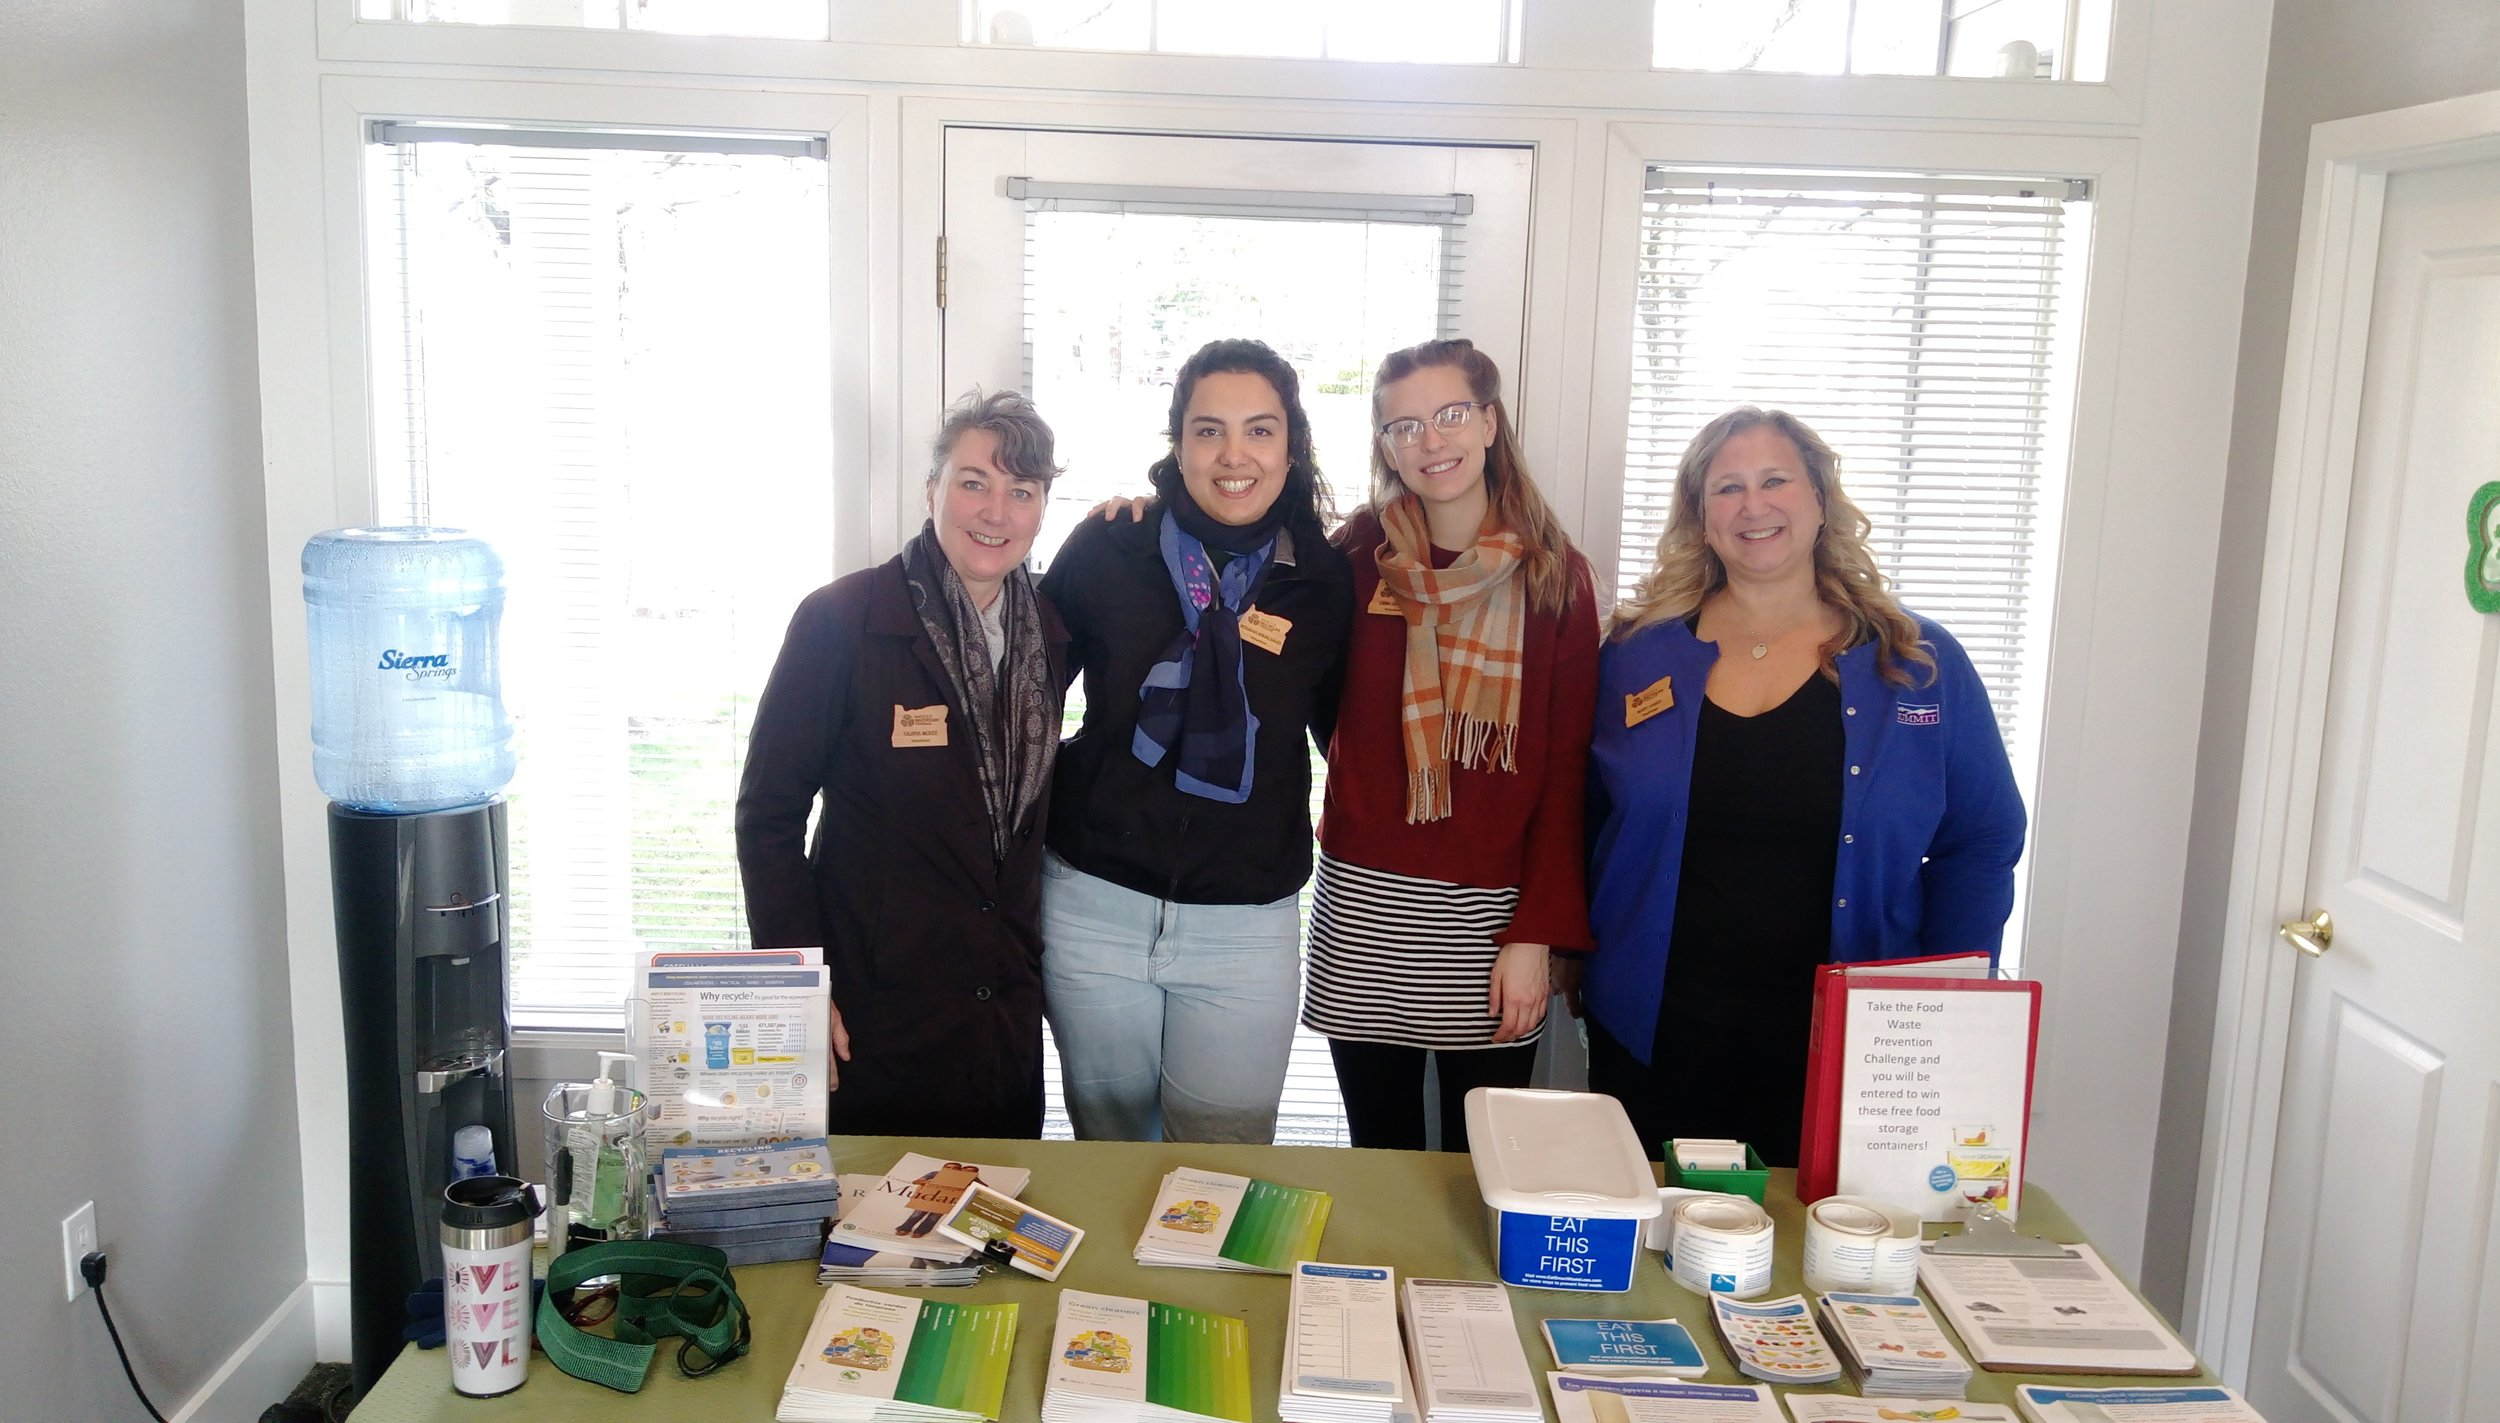 Emma (second to the right) at an event she invited fellow classmates to join.